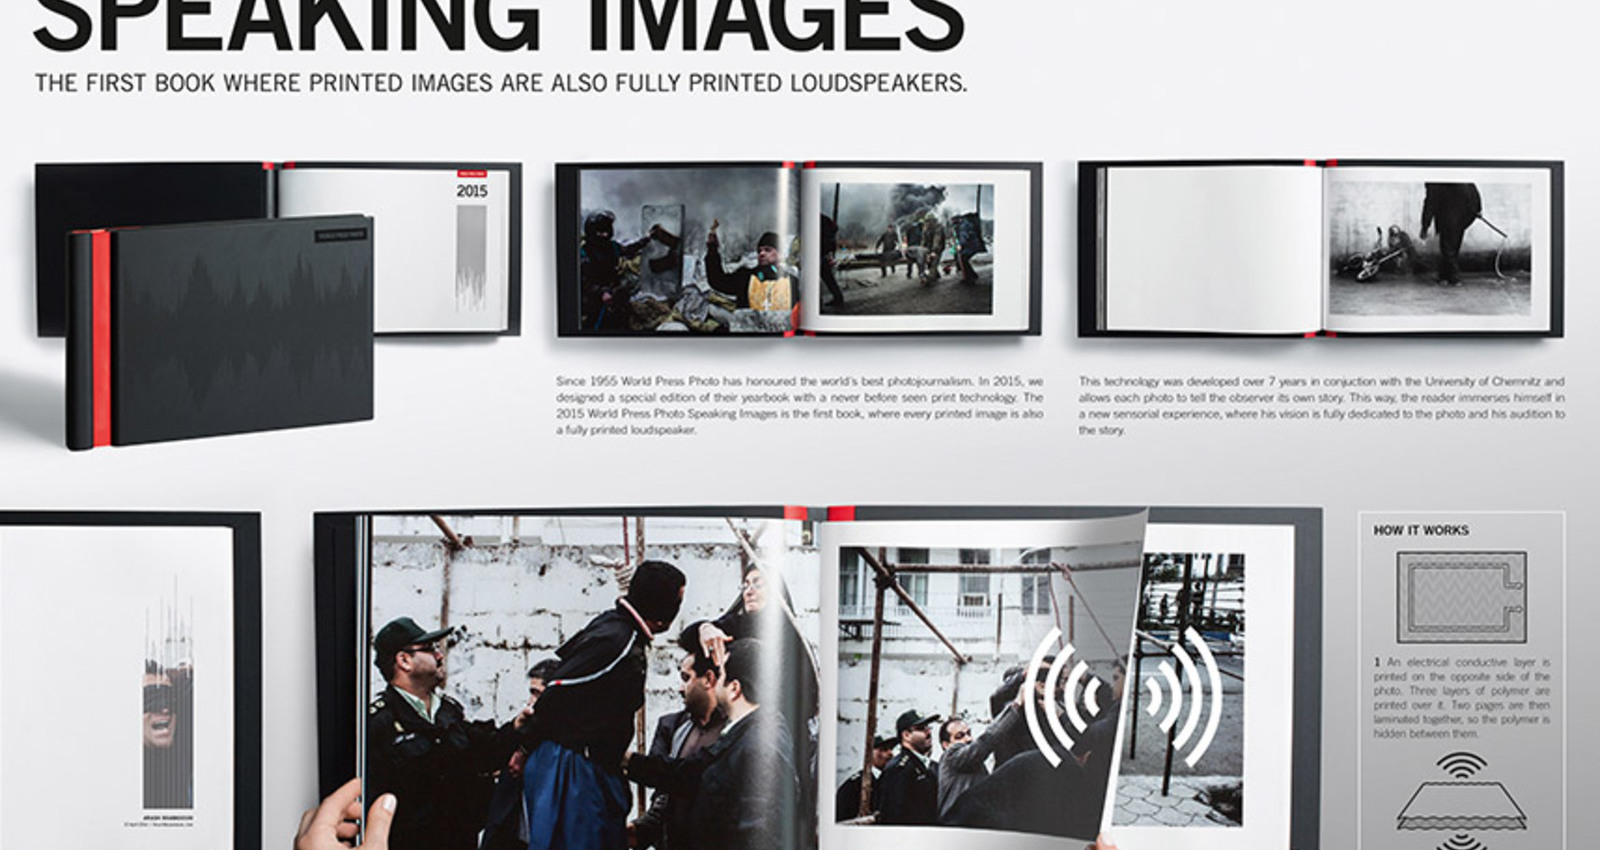 Speaking Images 2015